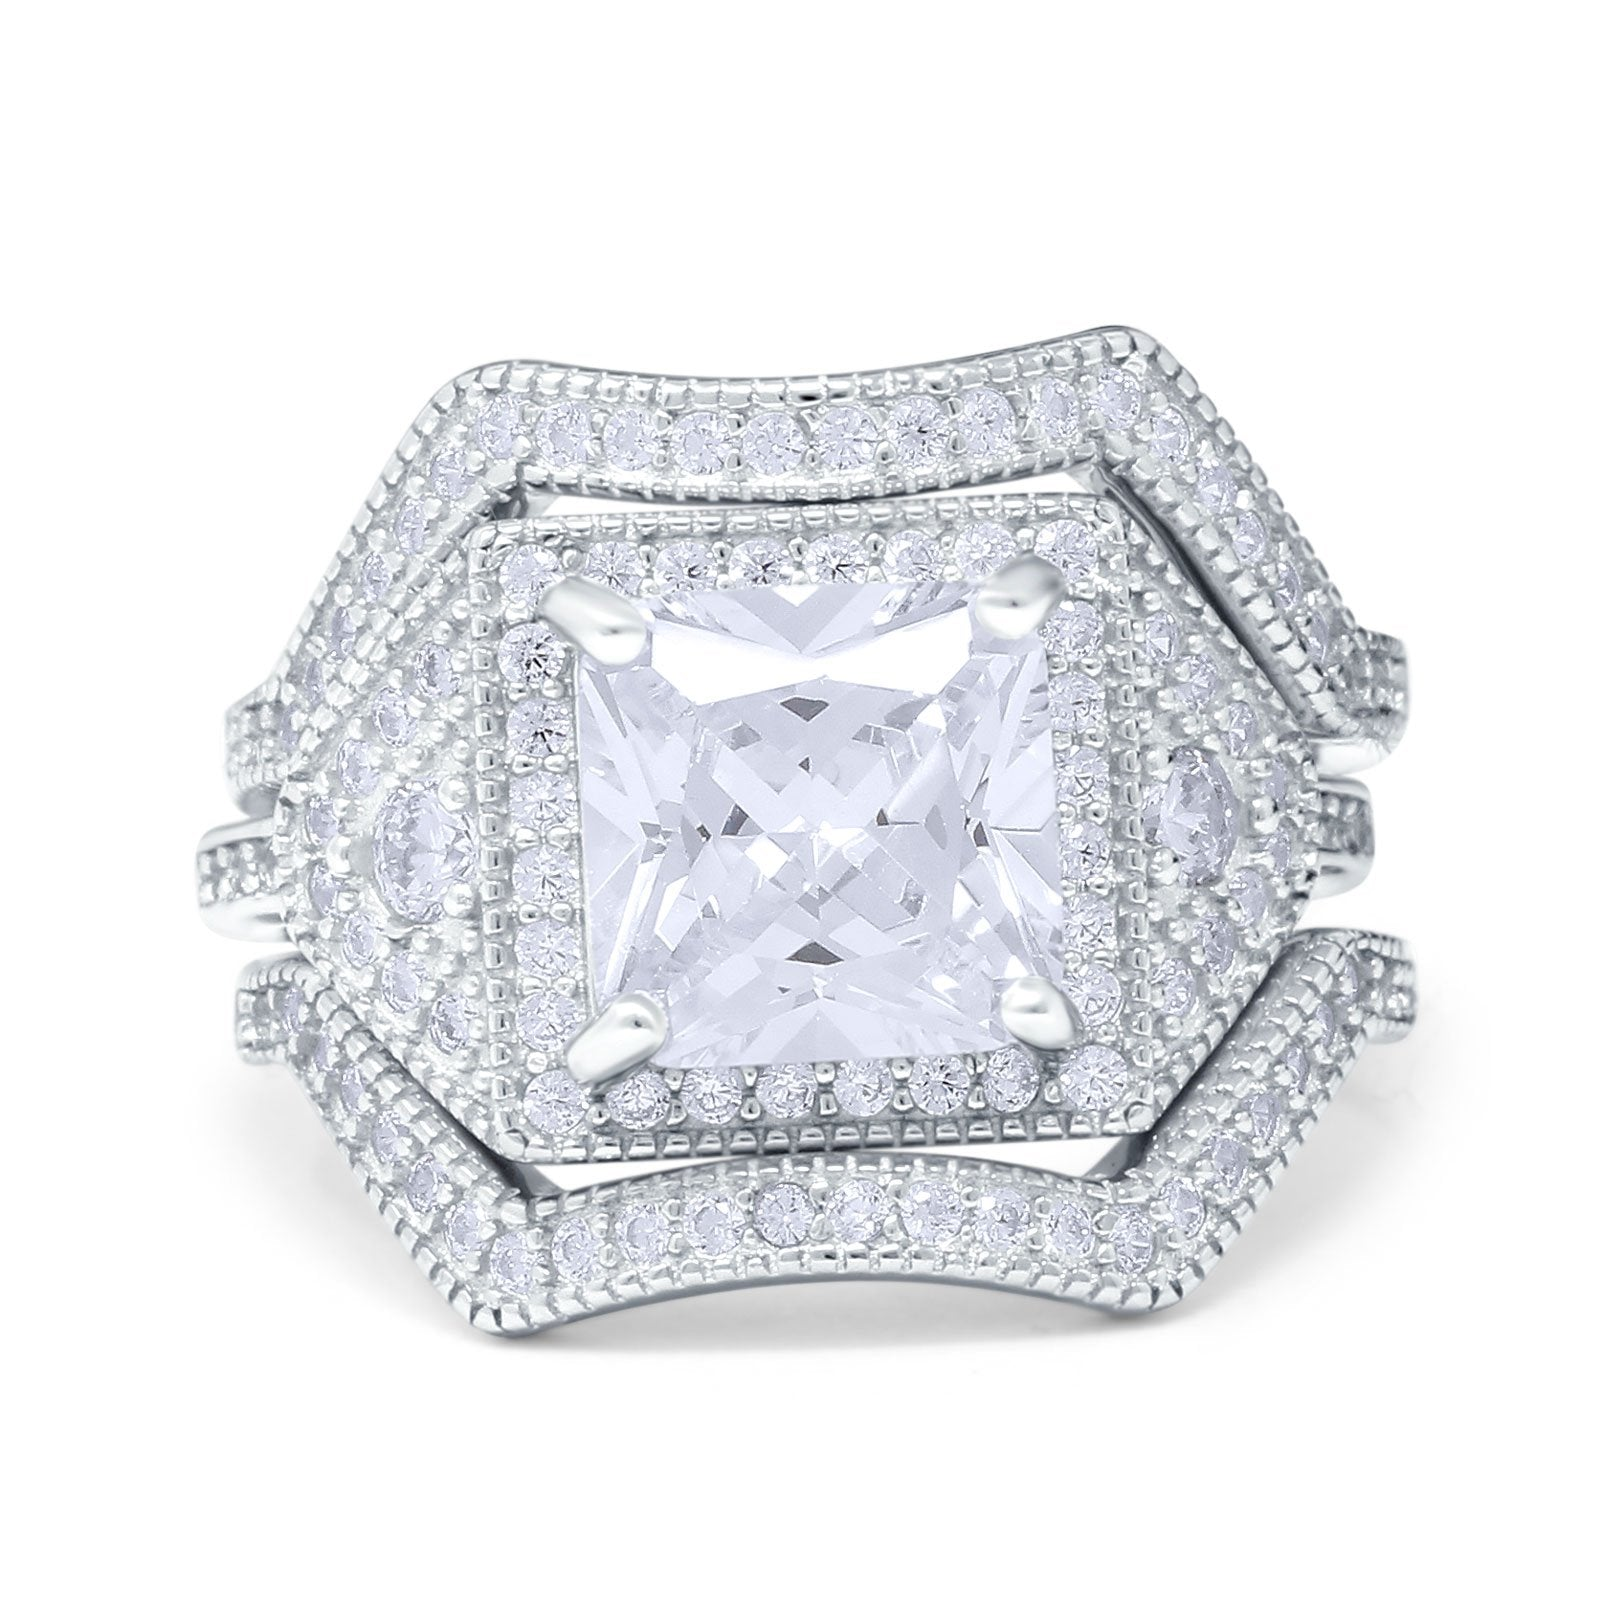 Princess Cut Vintage Art Deco Three Piece Bridal Set Wedding Ring Band Round Simulated Cubic Zirconia 925 Sterling Silver